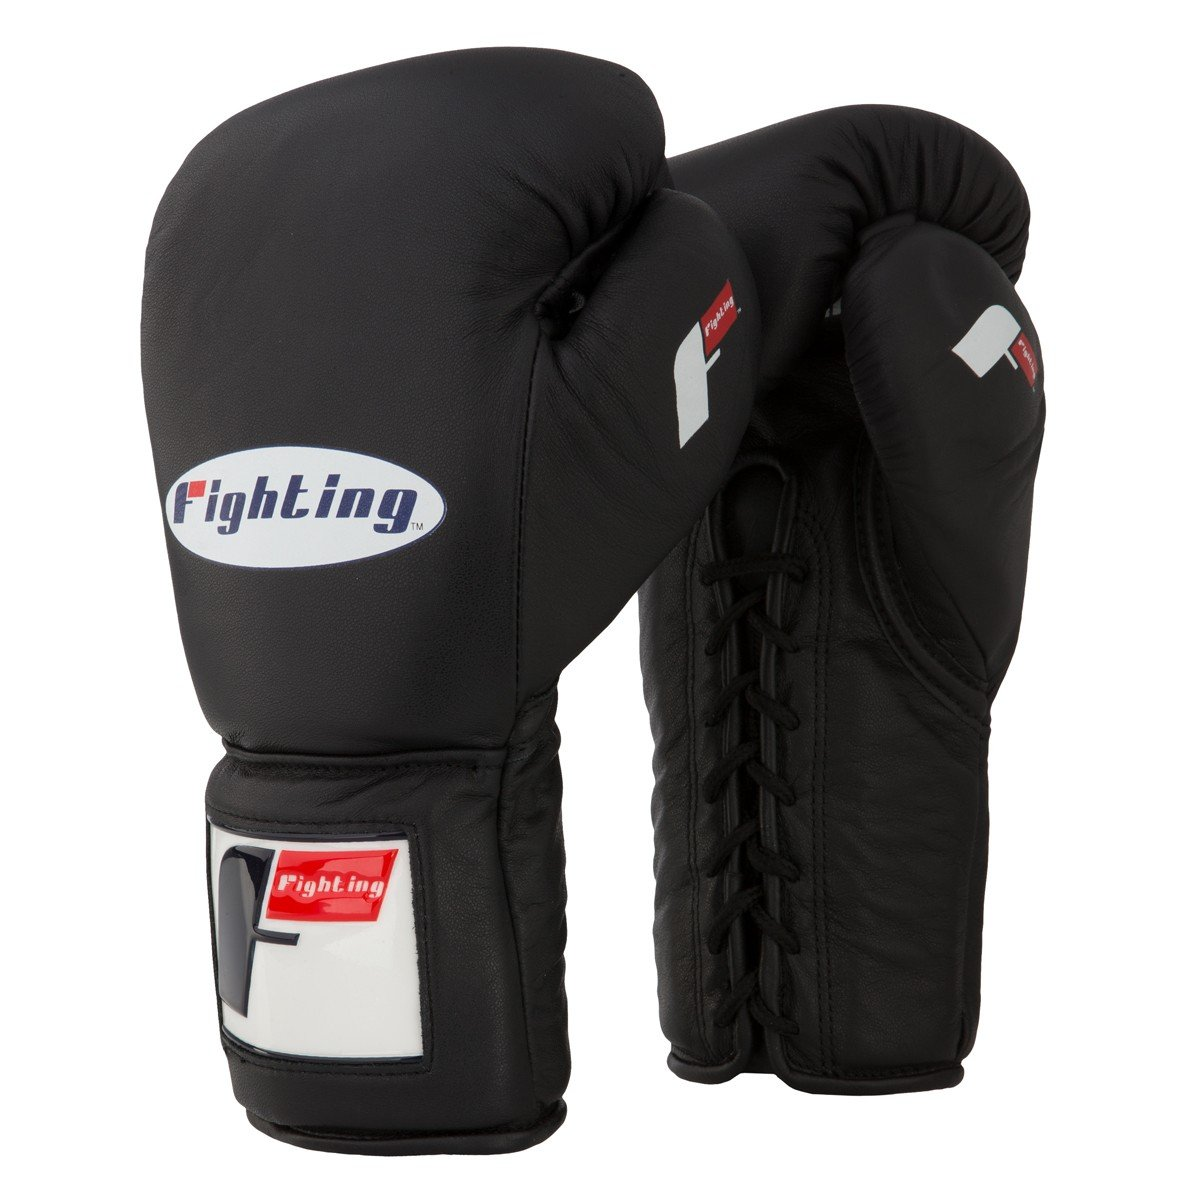 Fighting Sports Pro Lace Up Training Gloves by Title Boxing